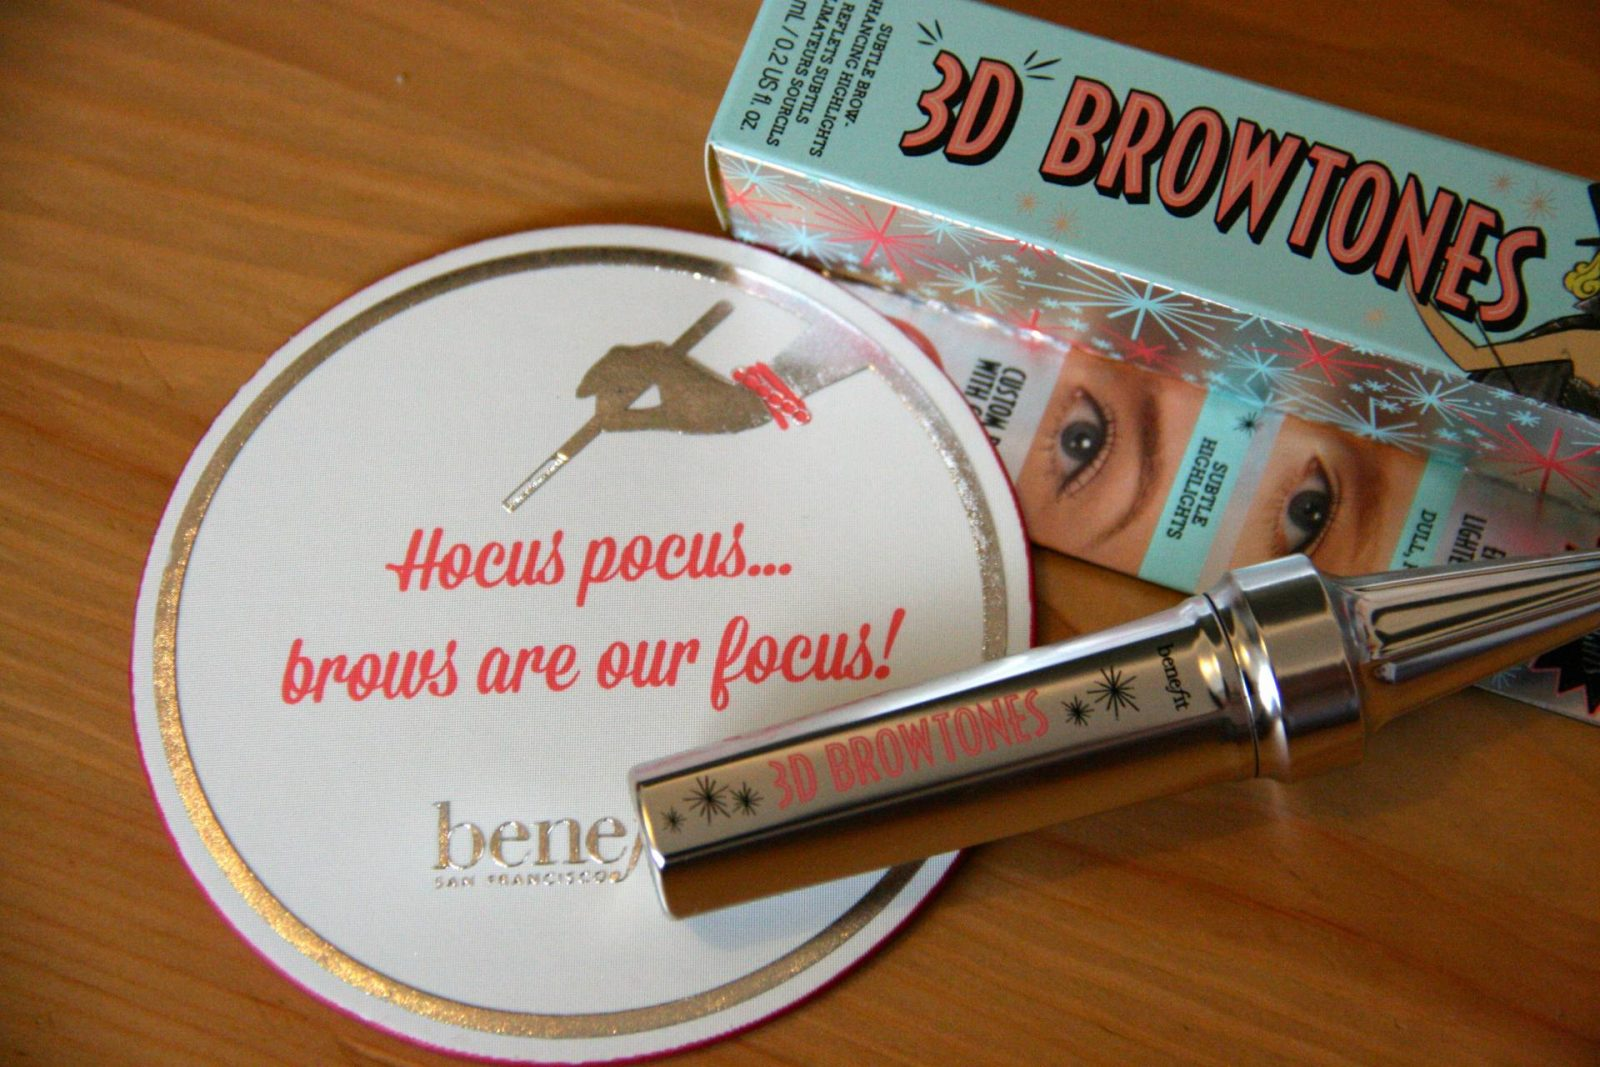 #BenefitBrows - 3D BROWtones